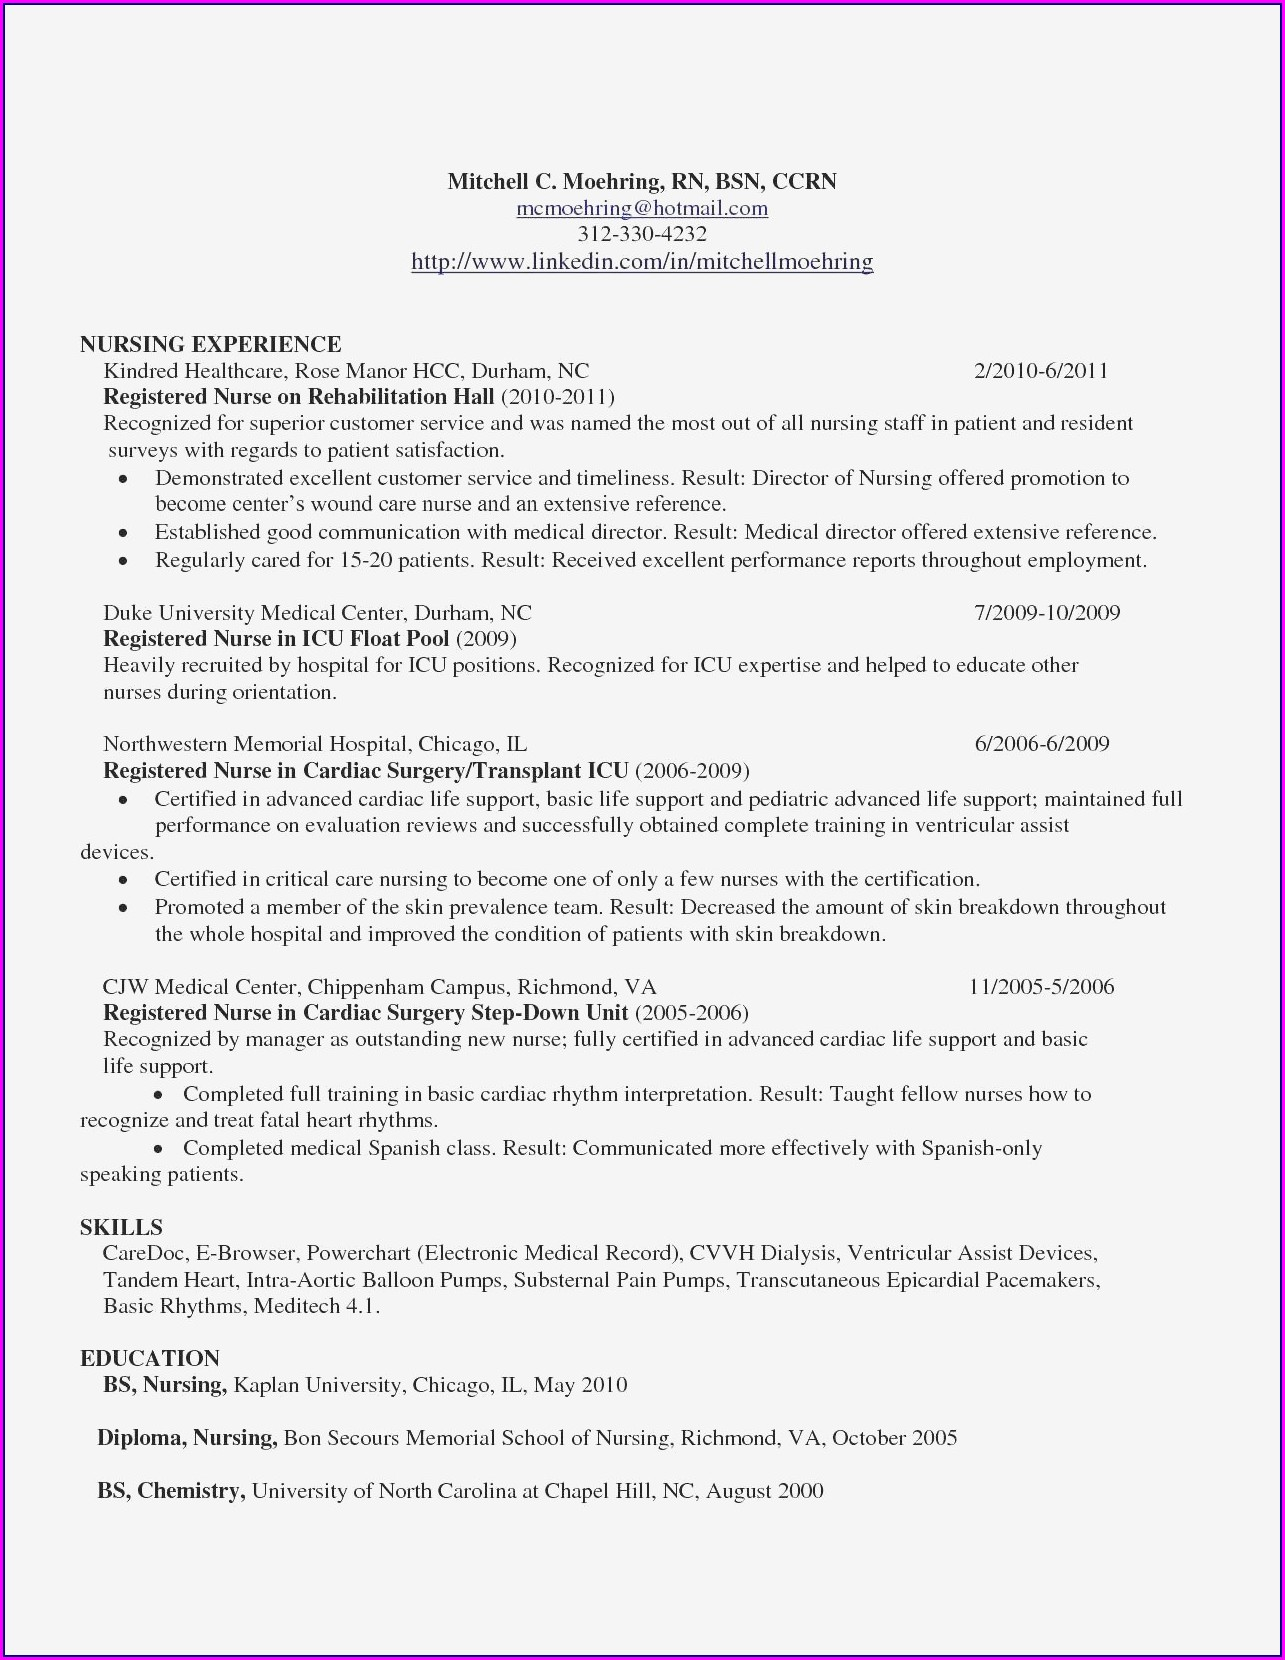 Sample Resume For Icu Registered Nurse